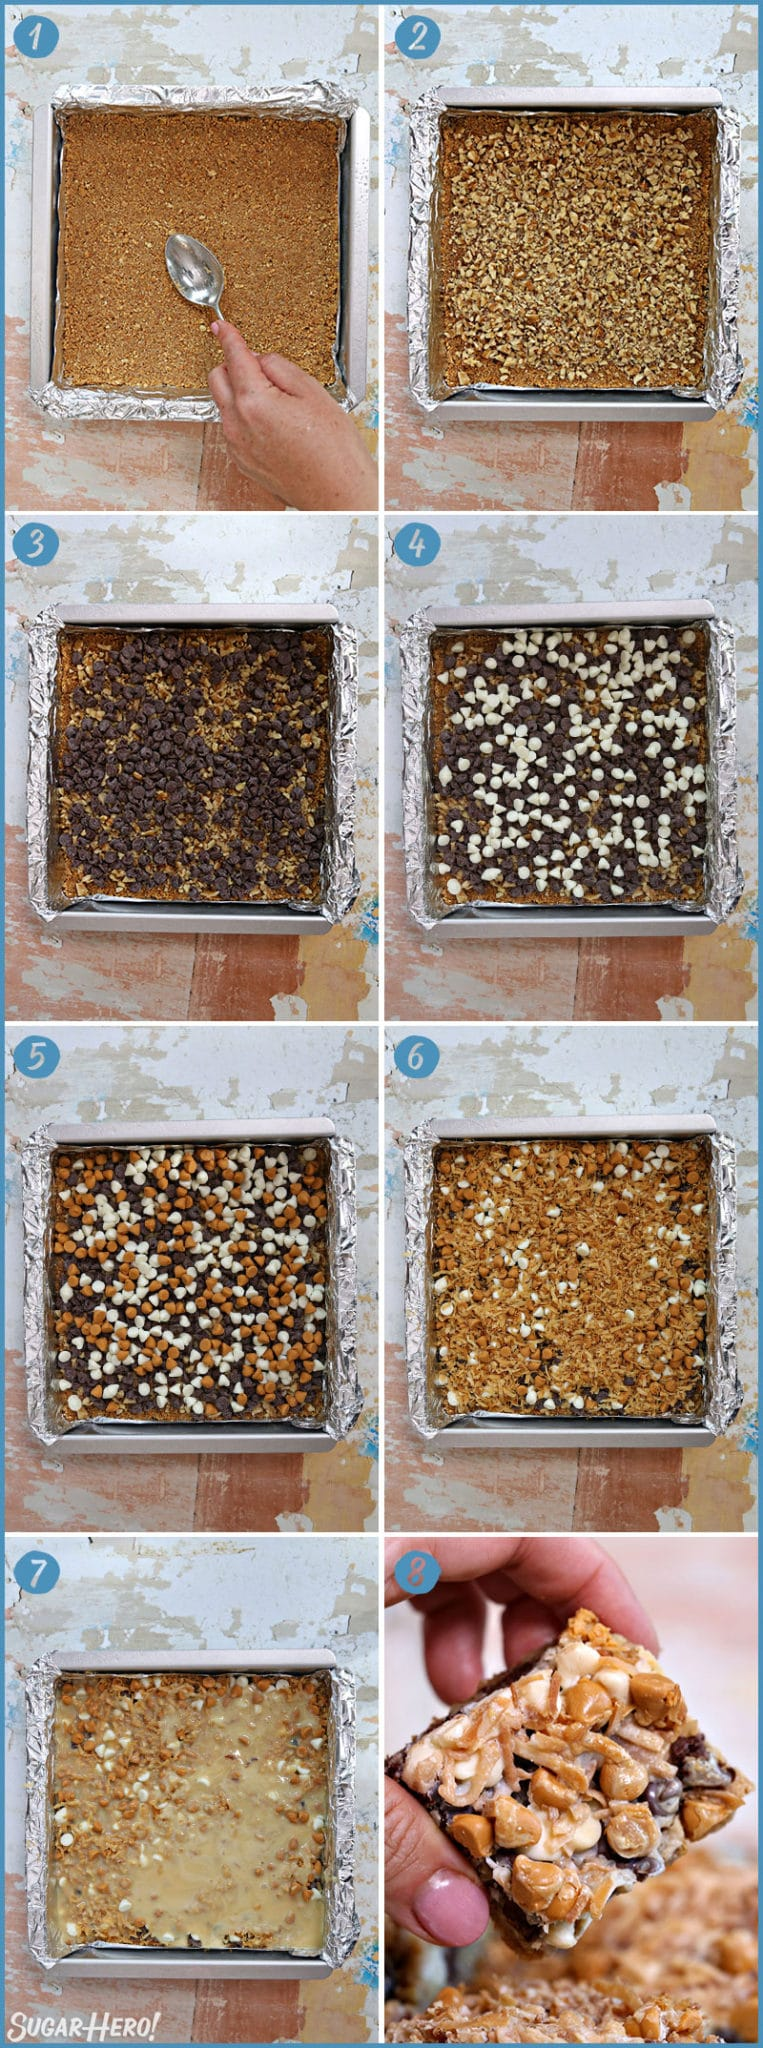 Eight photo collage showing how to assemble Seven Layer Cookie Bars